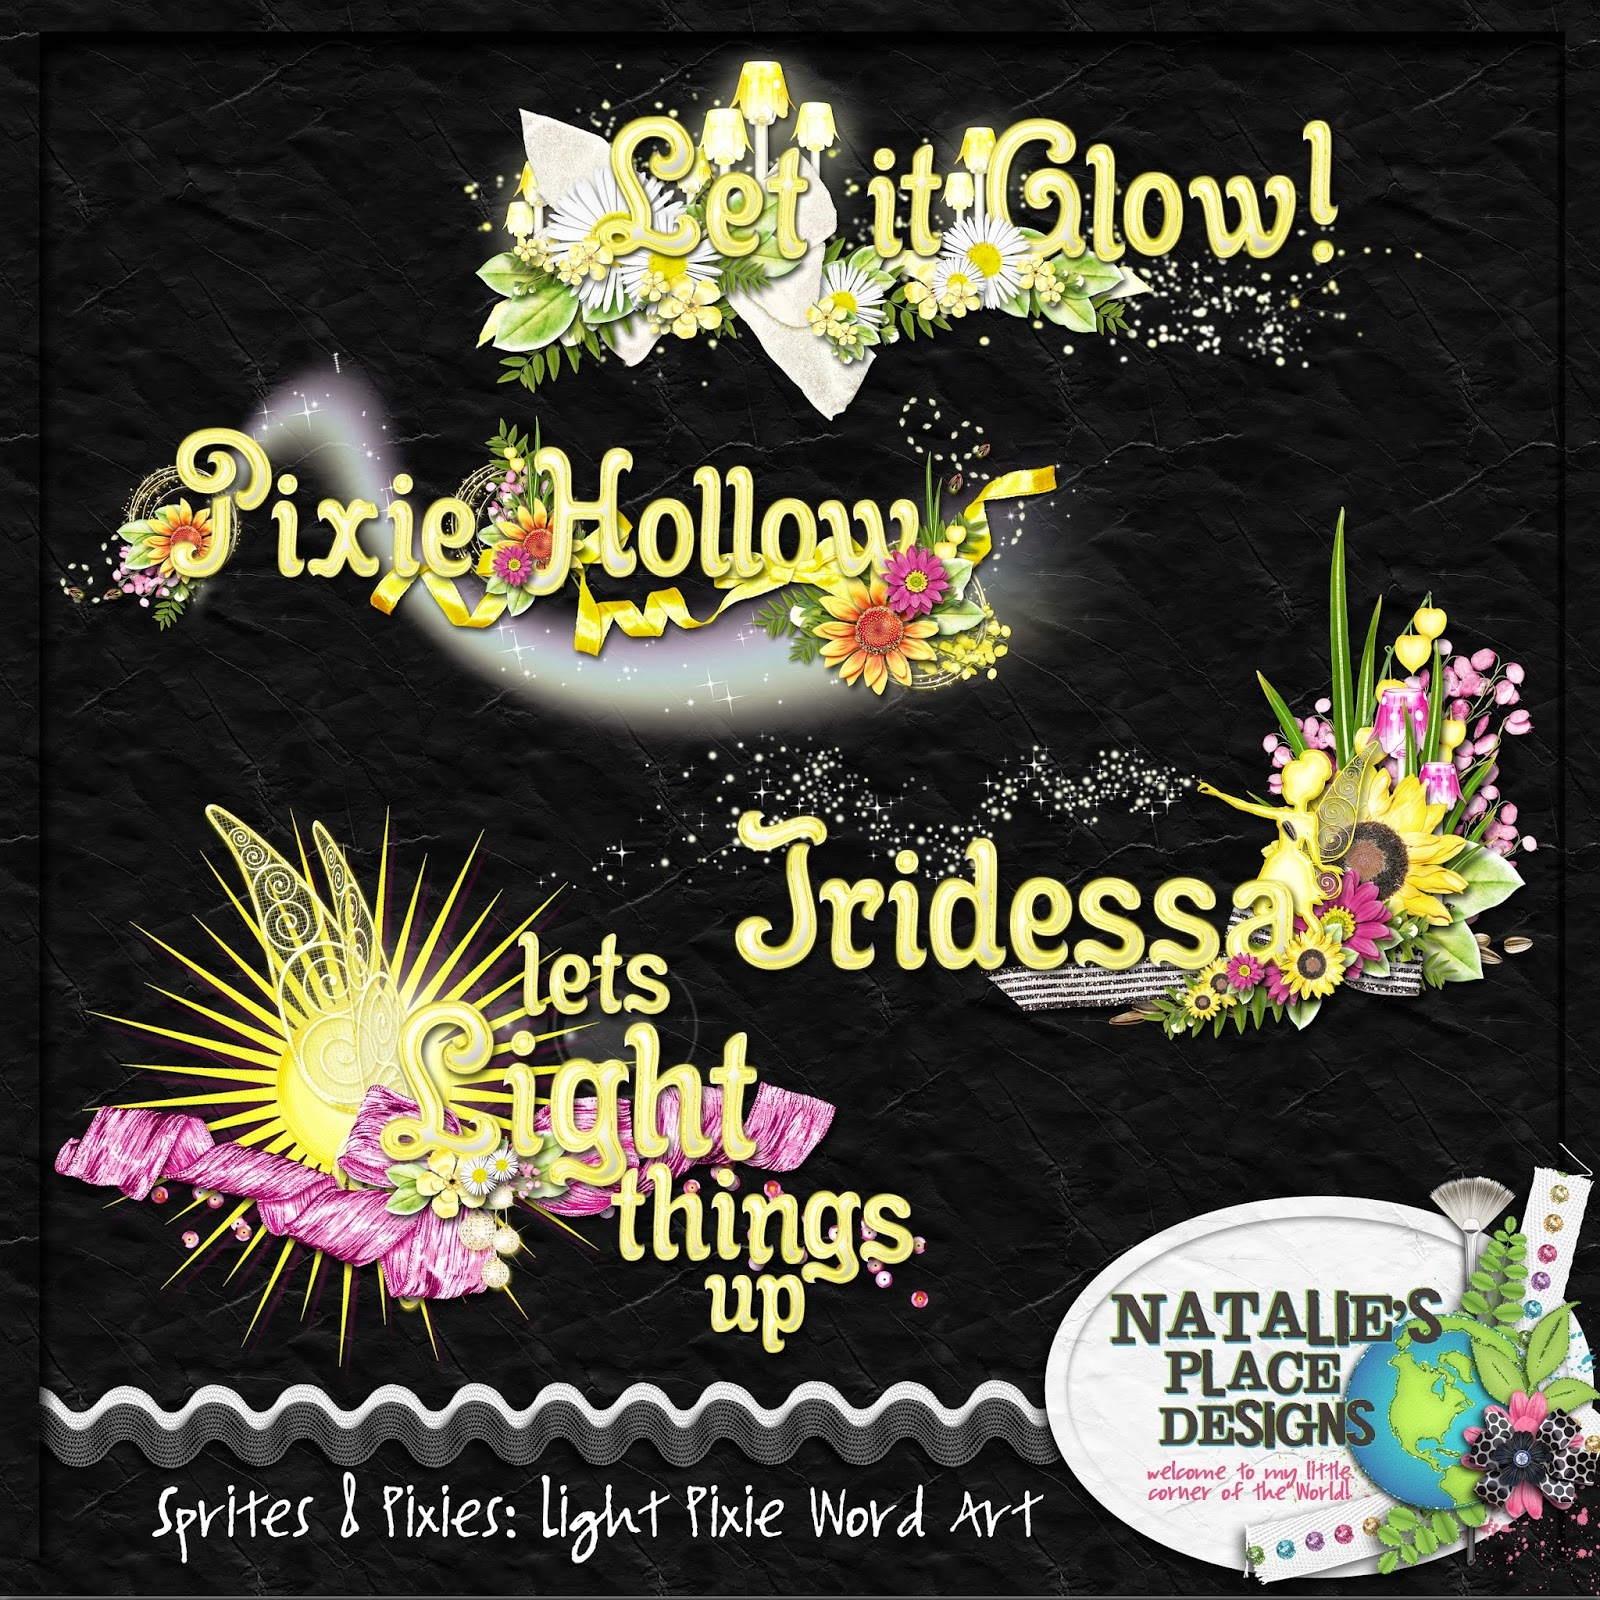 http://www.nataliesplacedesigns.com/store/p486/Sprites_%26_Pixies%3A_Light_Pixie_Word_Art.html